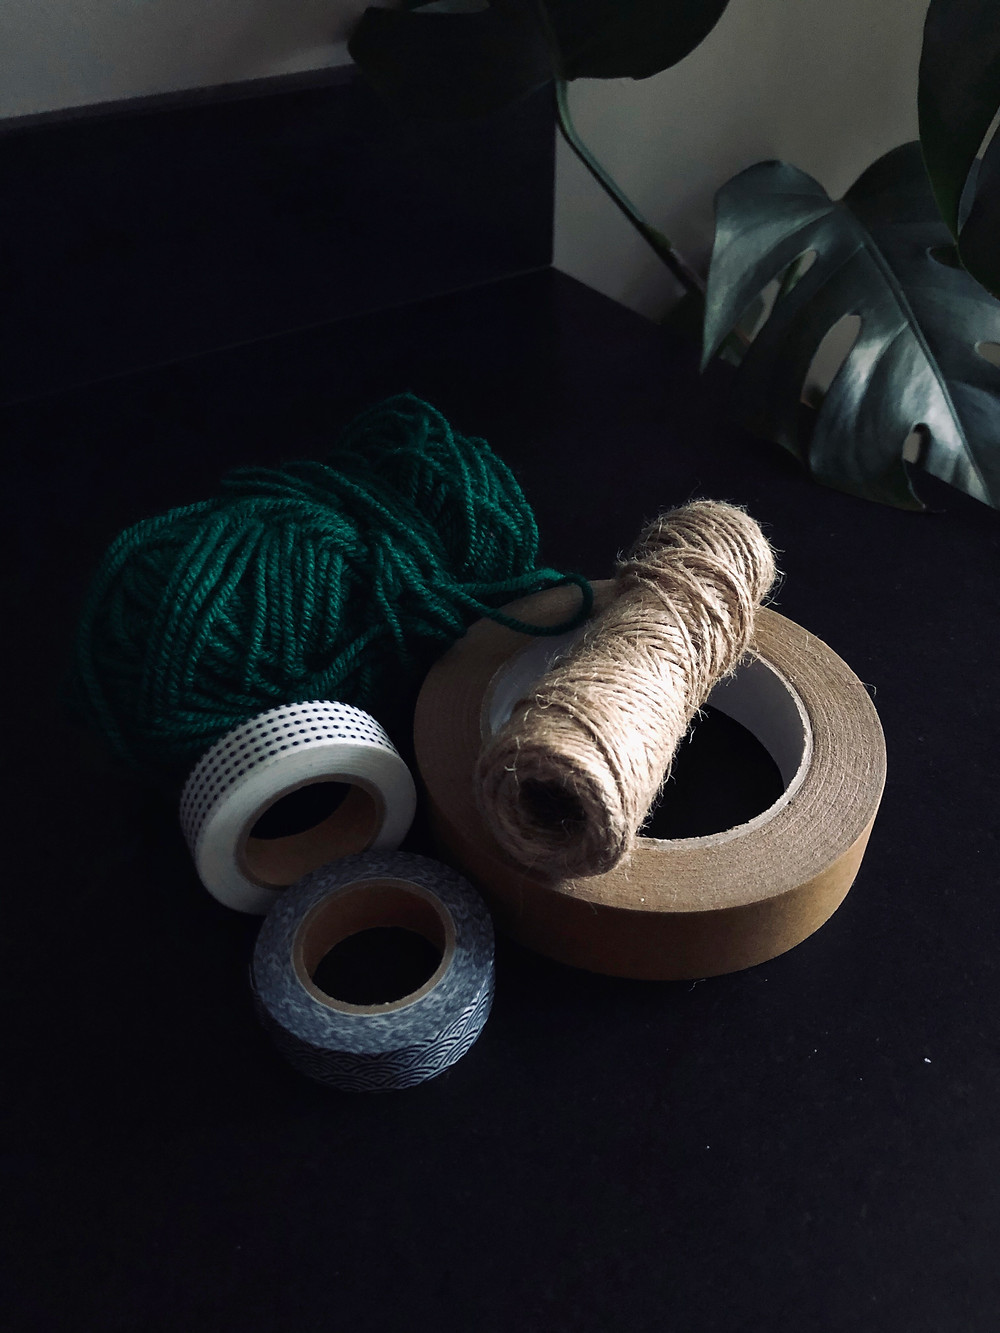 Alternative to sellotape including twine, wool, washi tape or brown paper tape